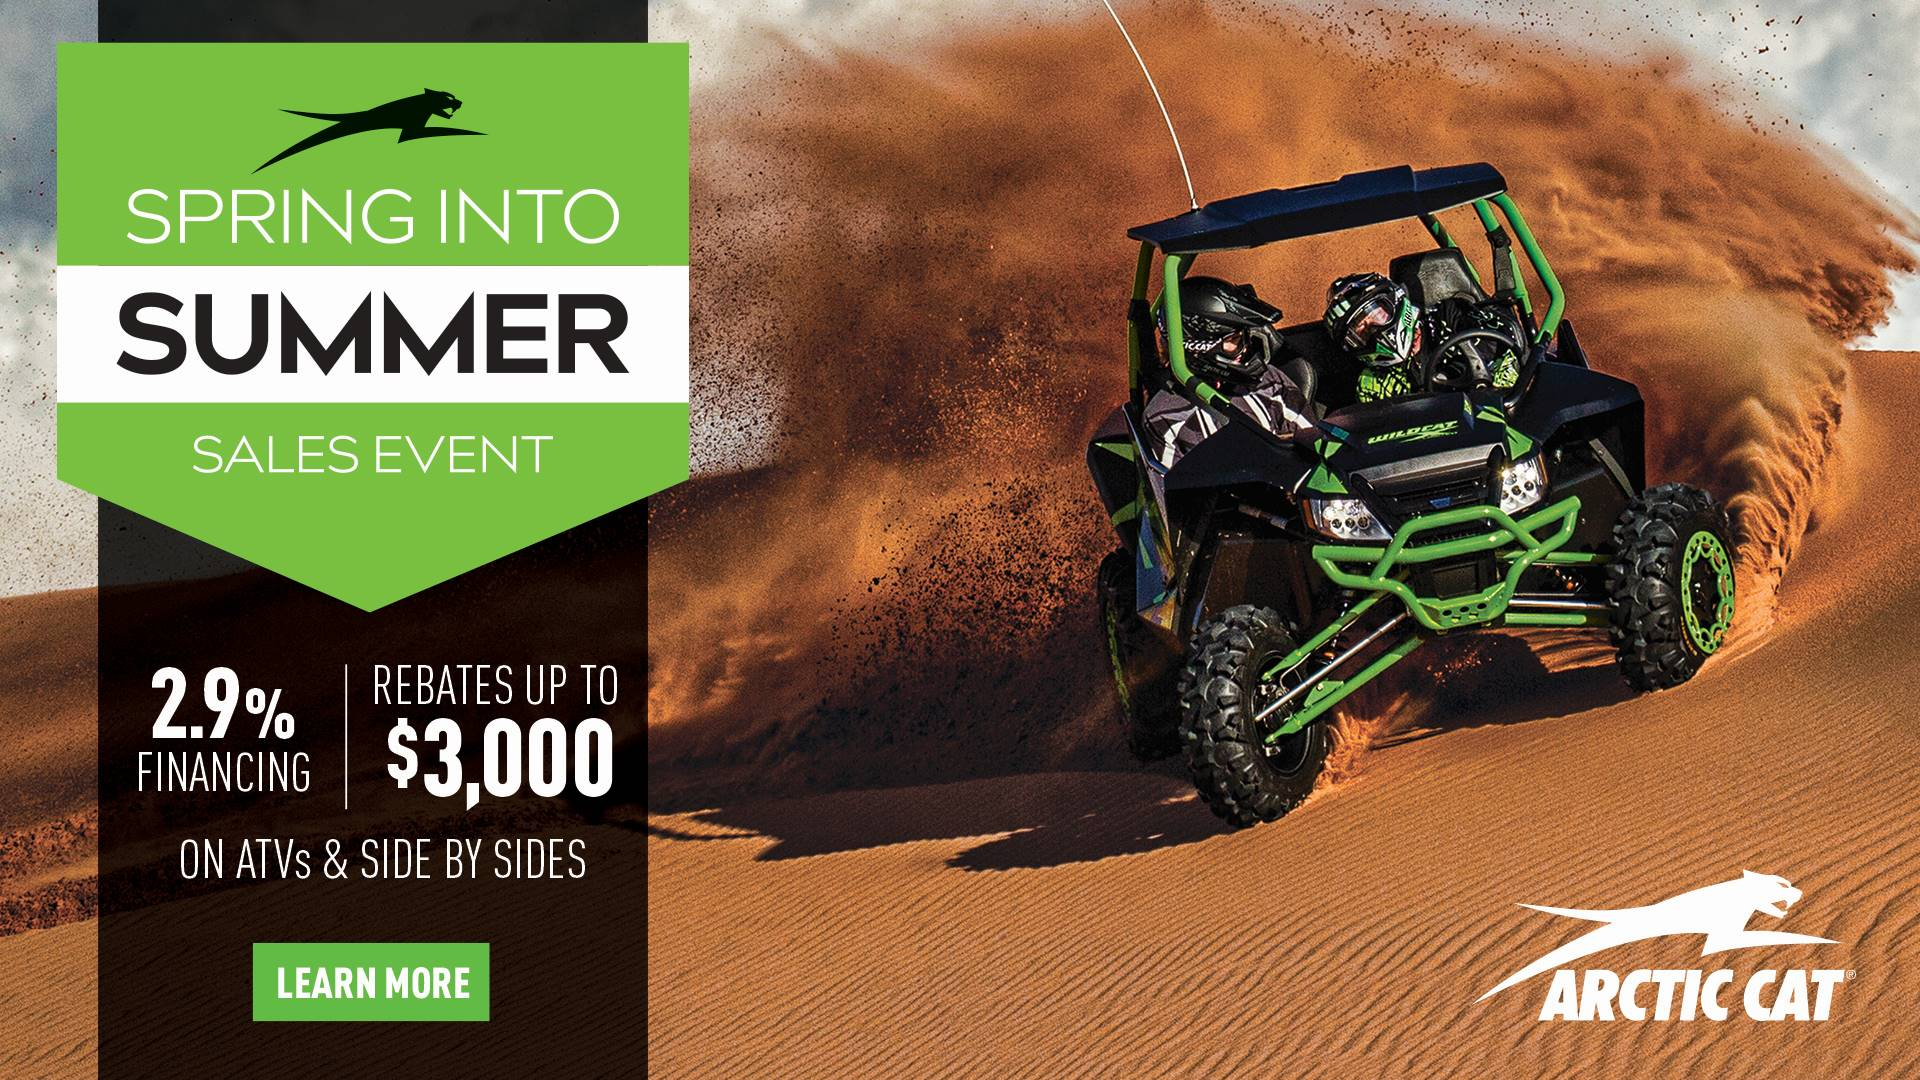 Arctic Cat - Spring Into Summer Sales Event - ATVs - MY2017